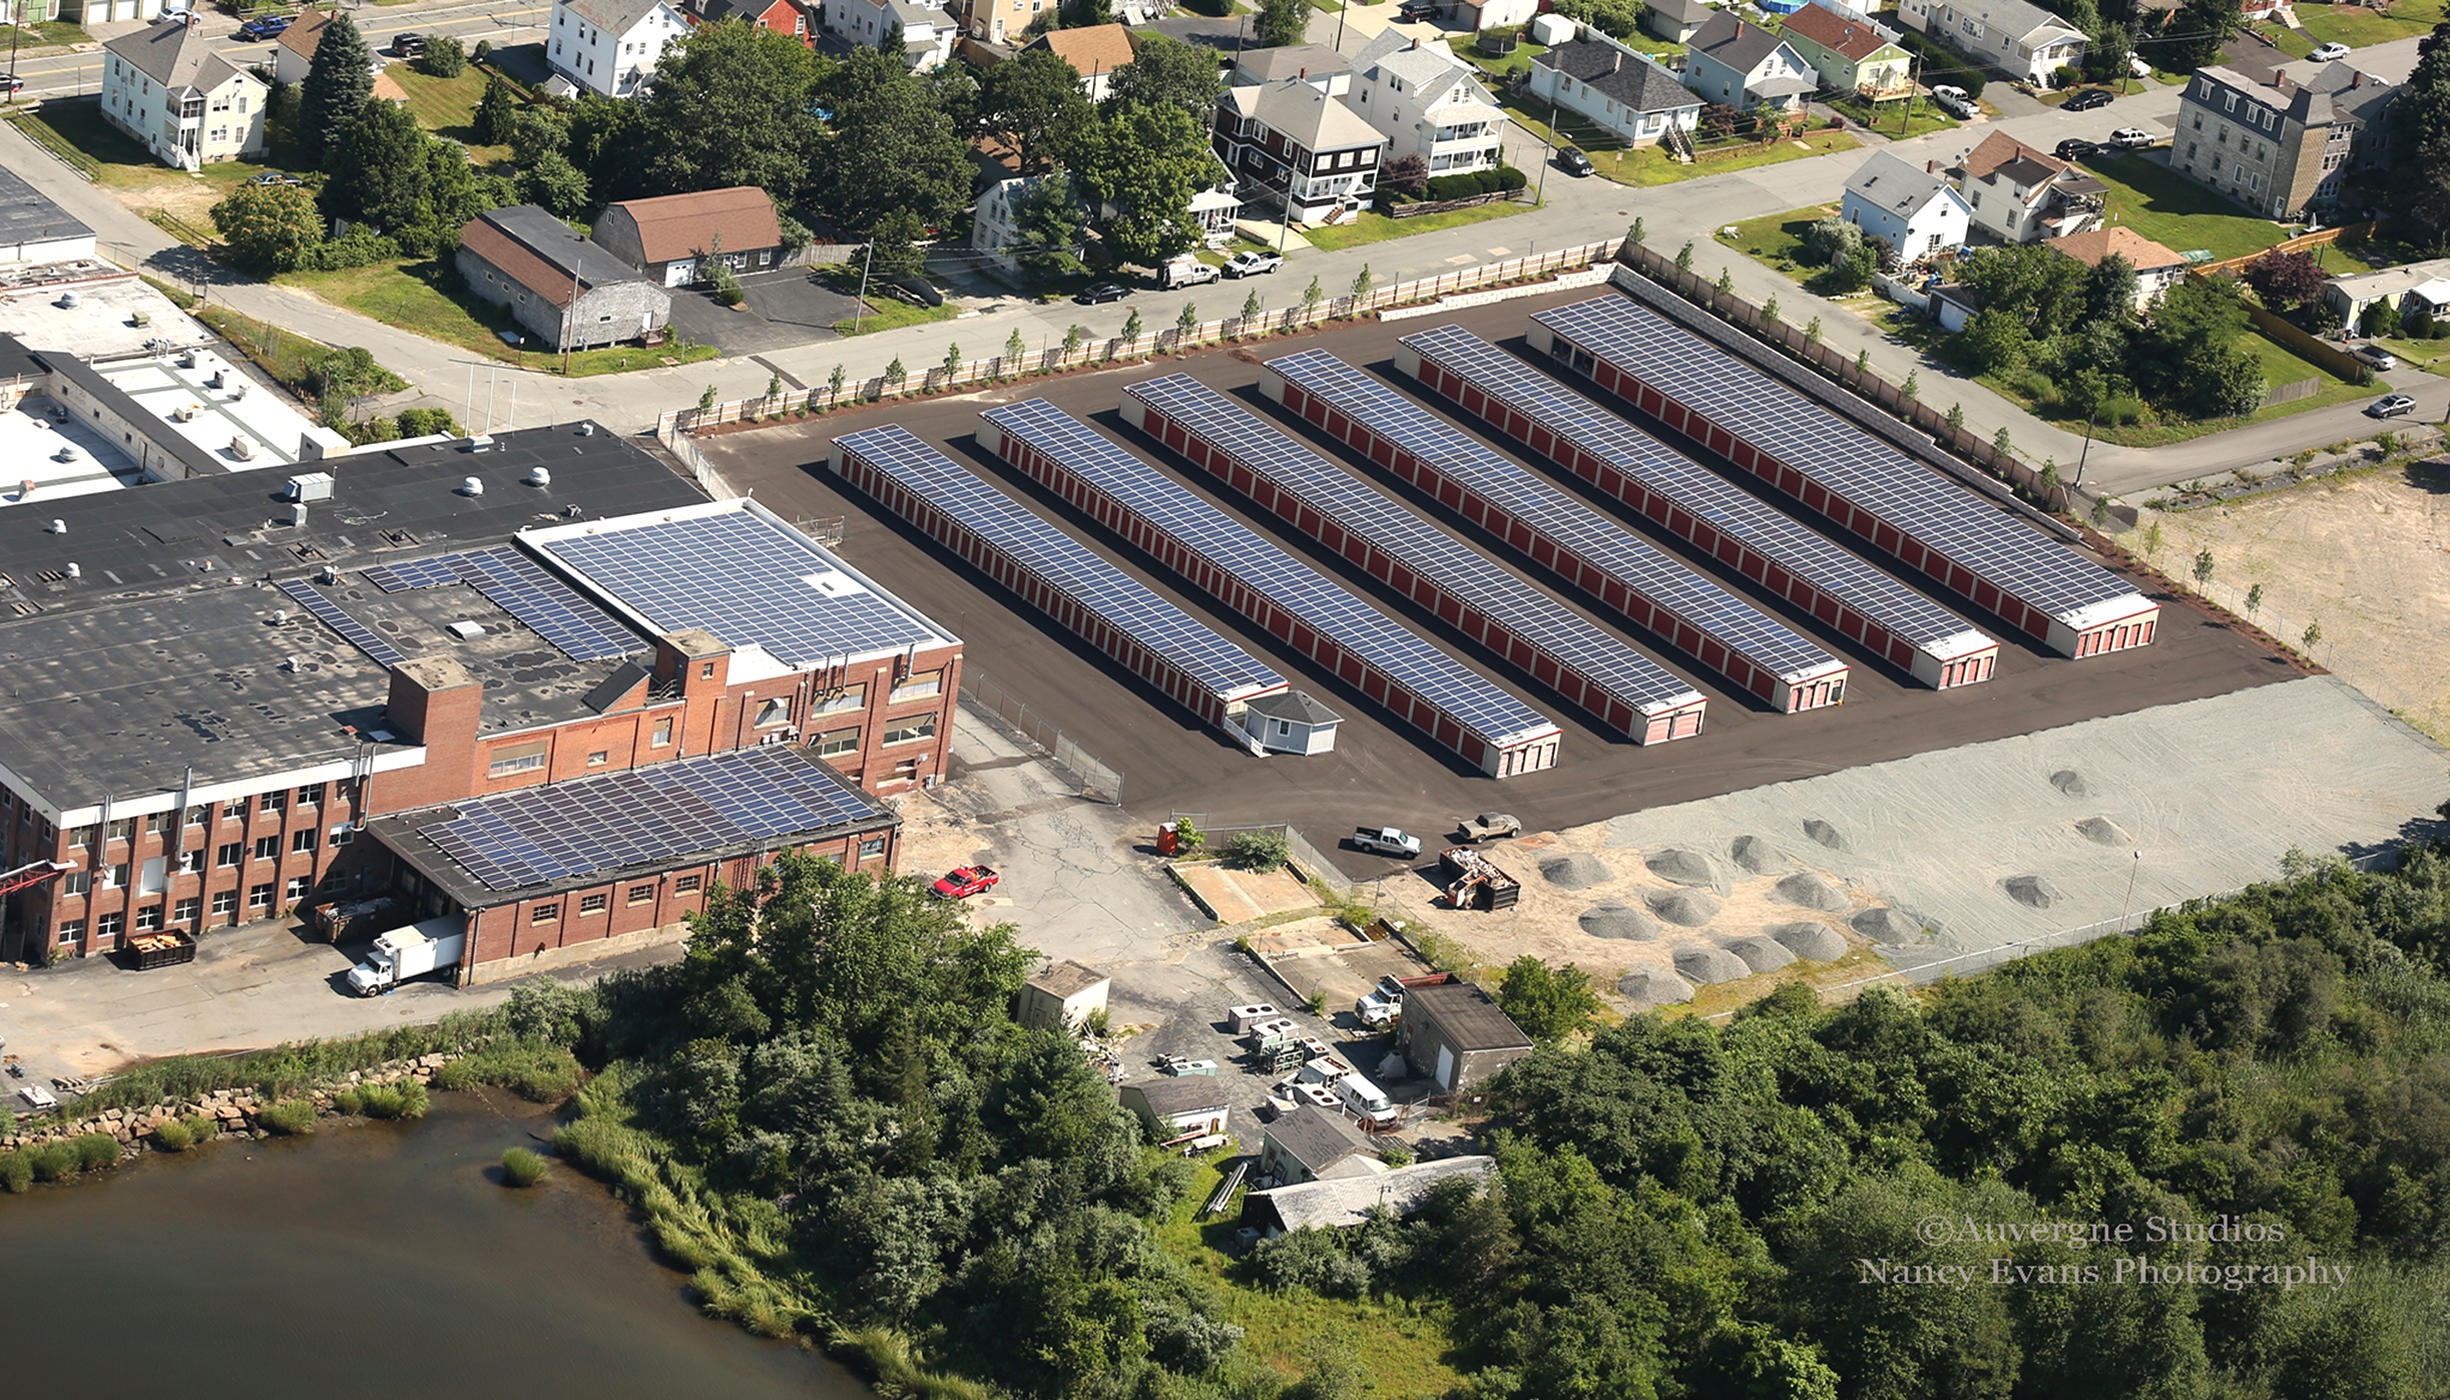 516kW make up this self-storage project